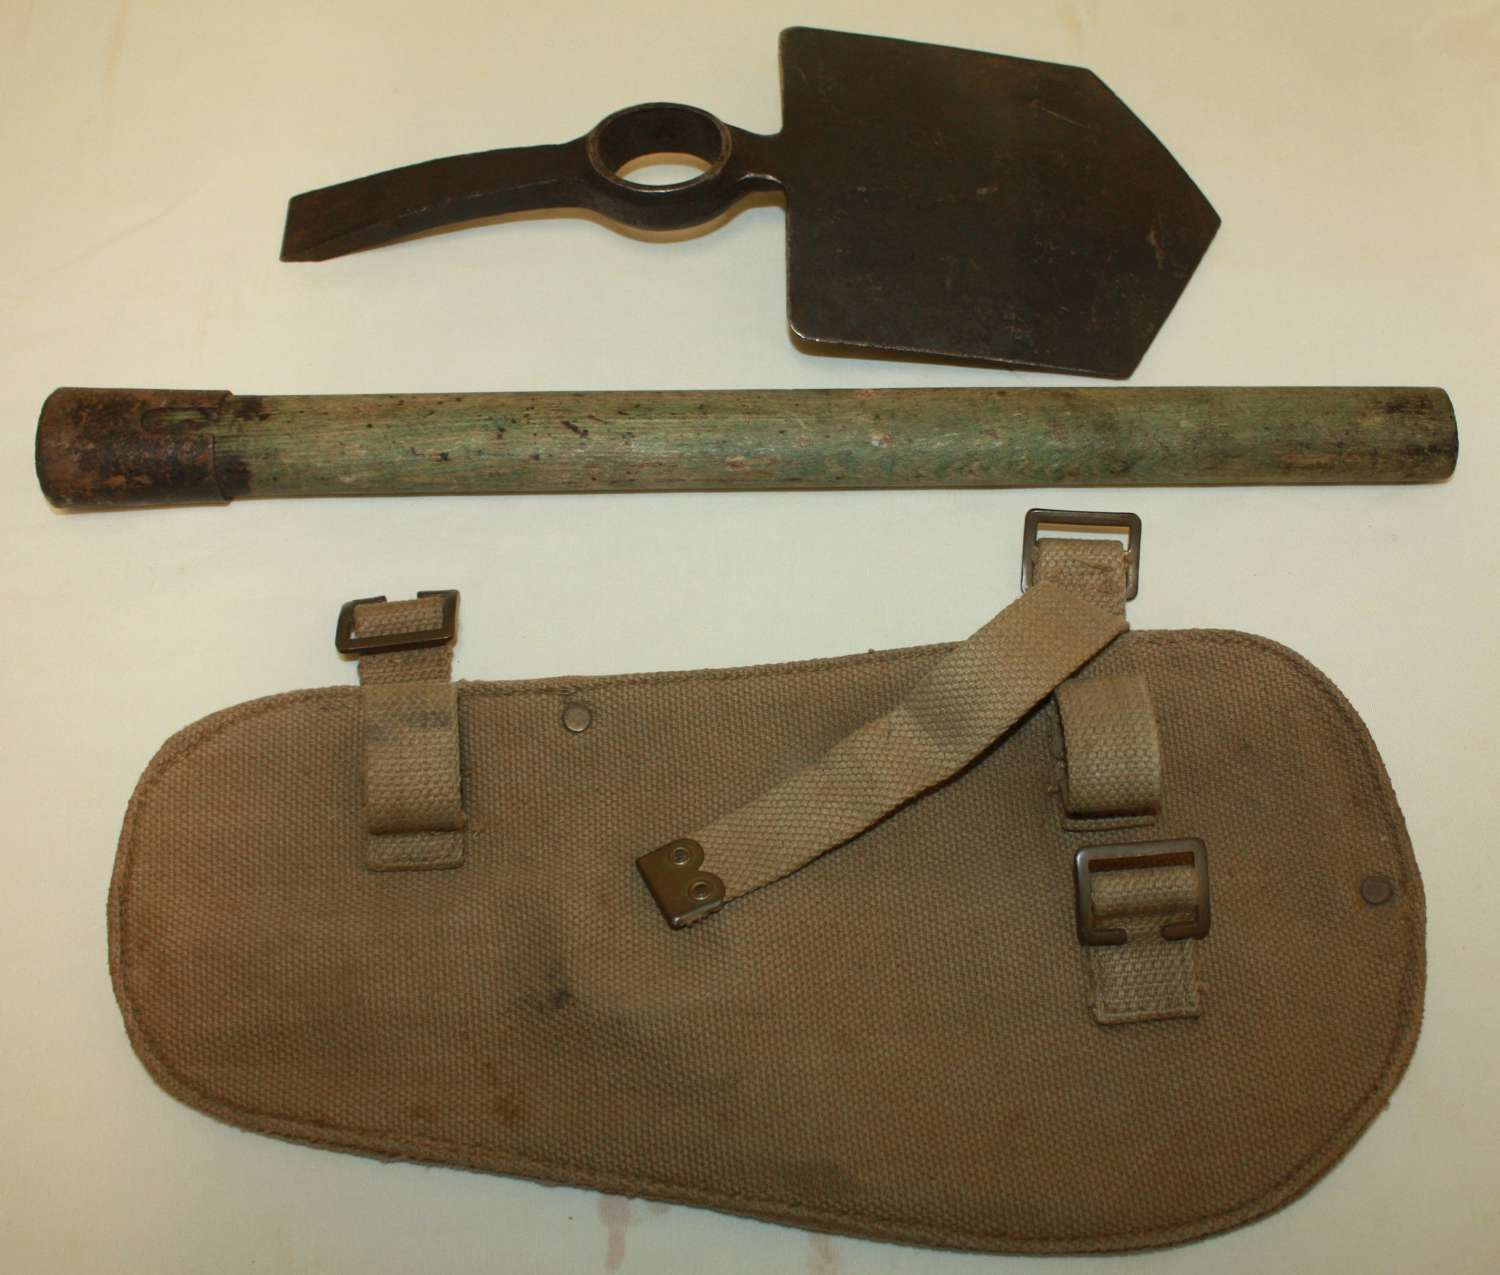 A GOOD 1944 DATED BRITISH 37 PATTERN ENTRENCHING TOOL SET